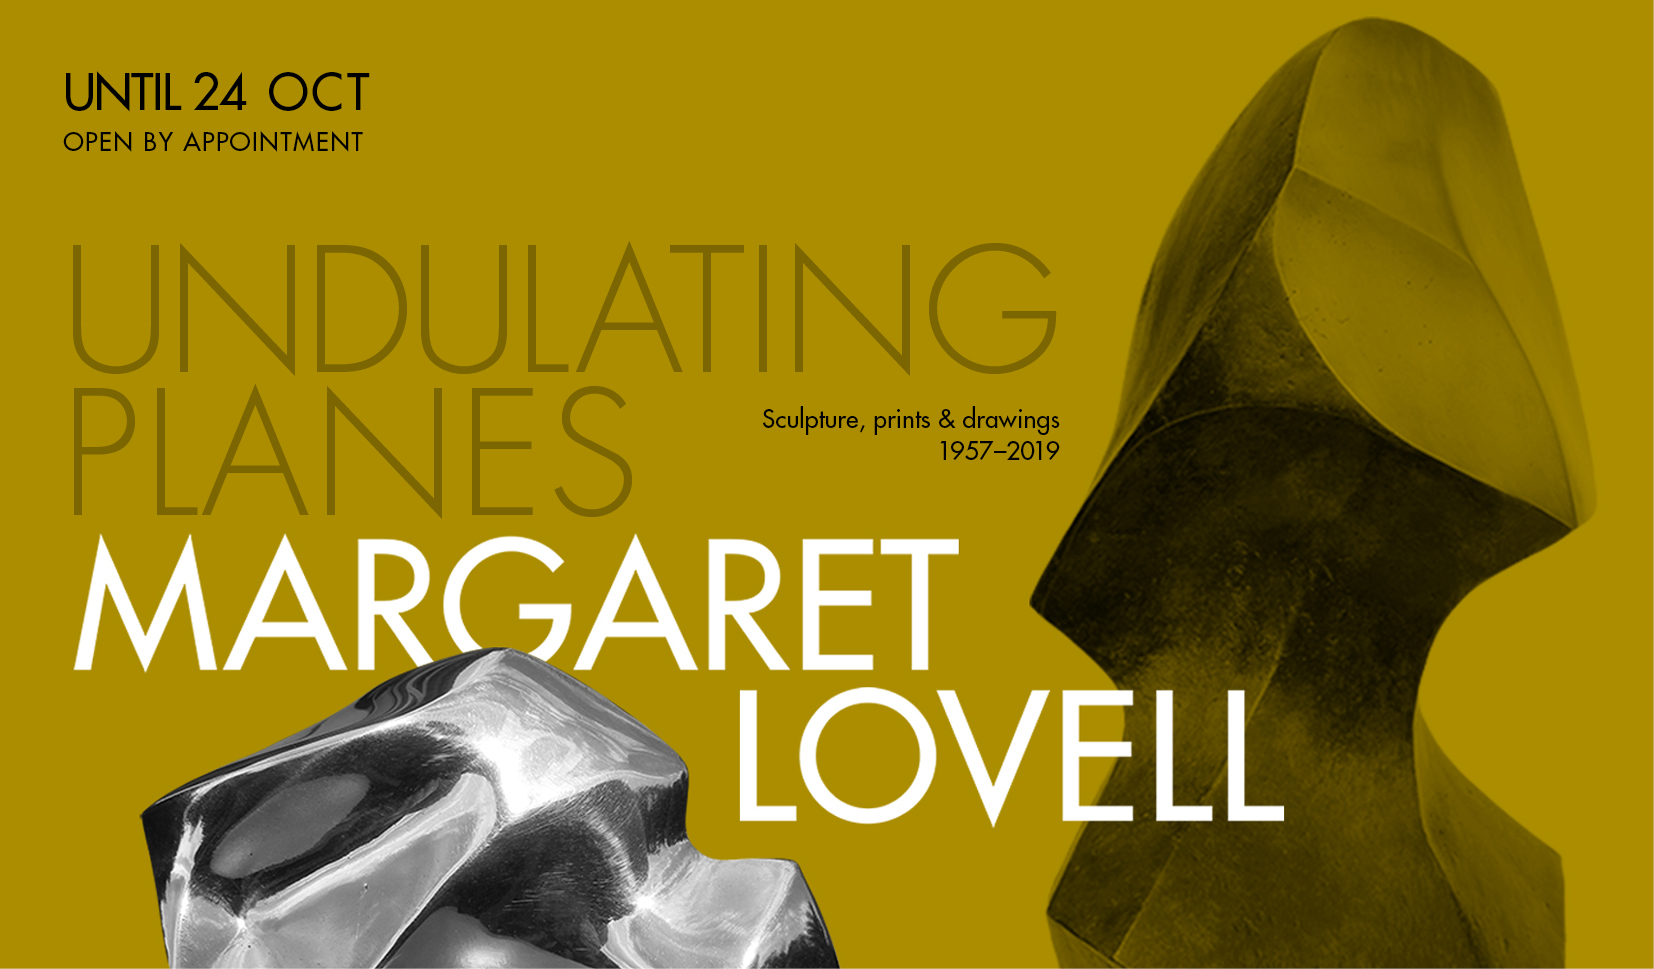 magraret lovell exhibition BY appointment